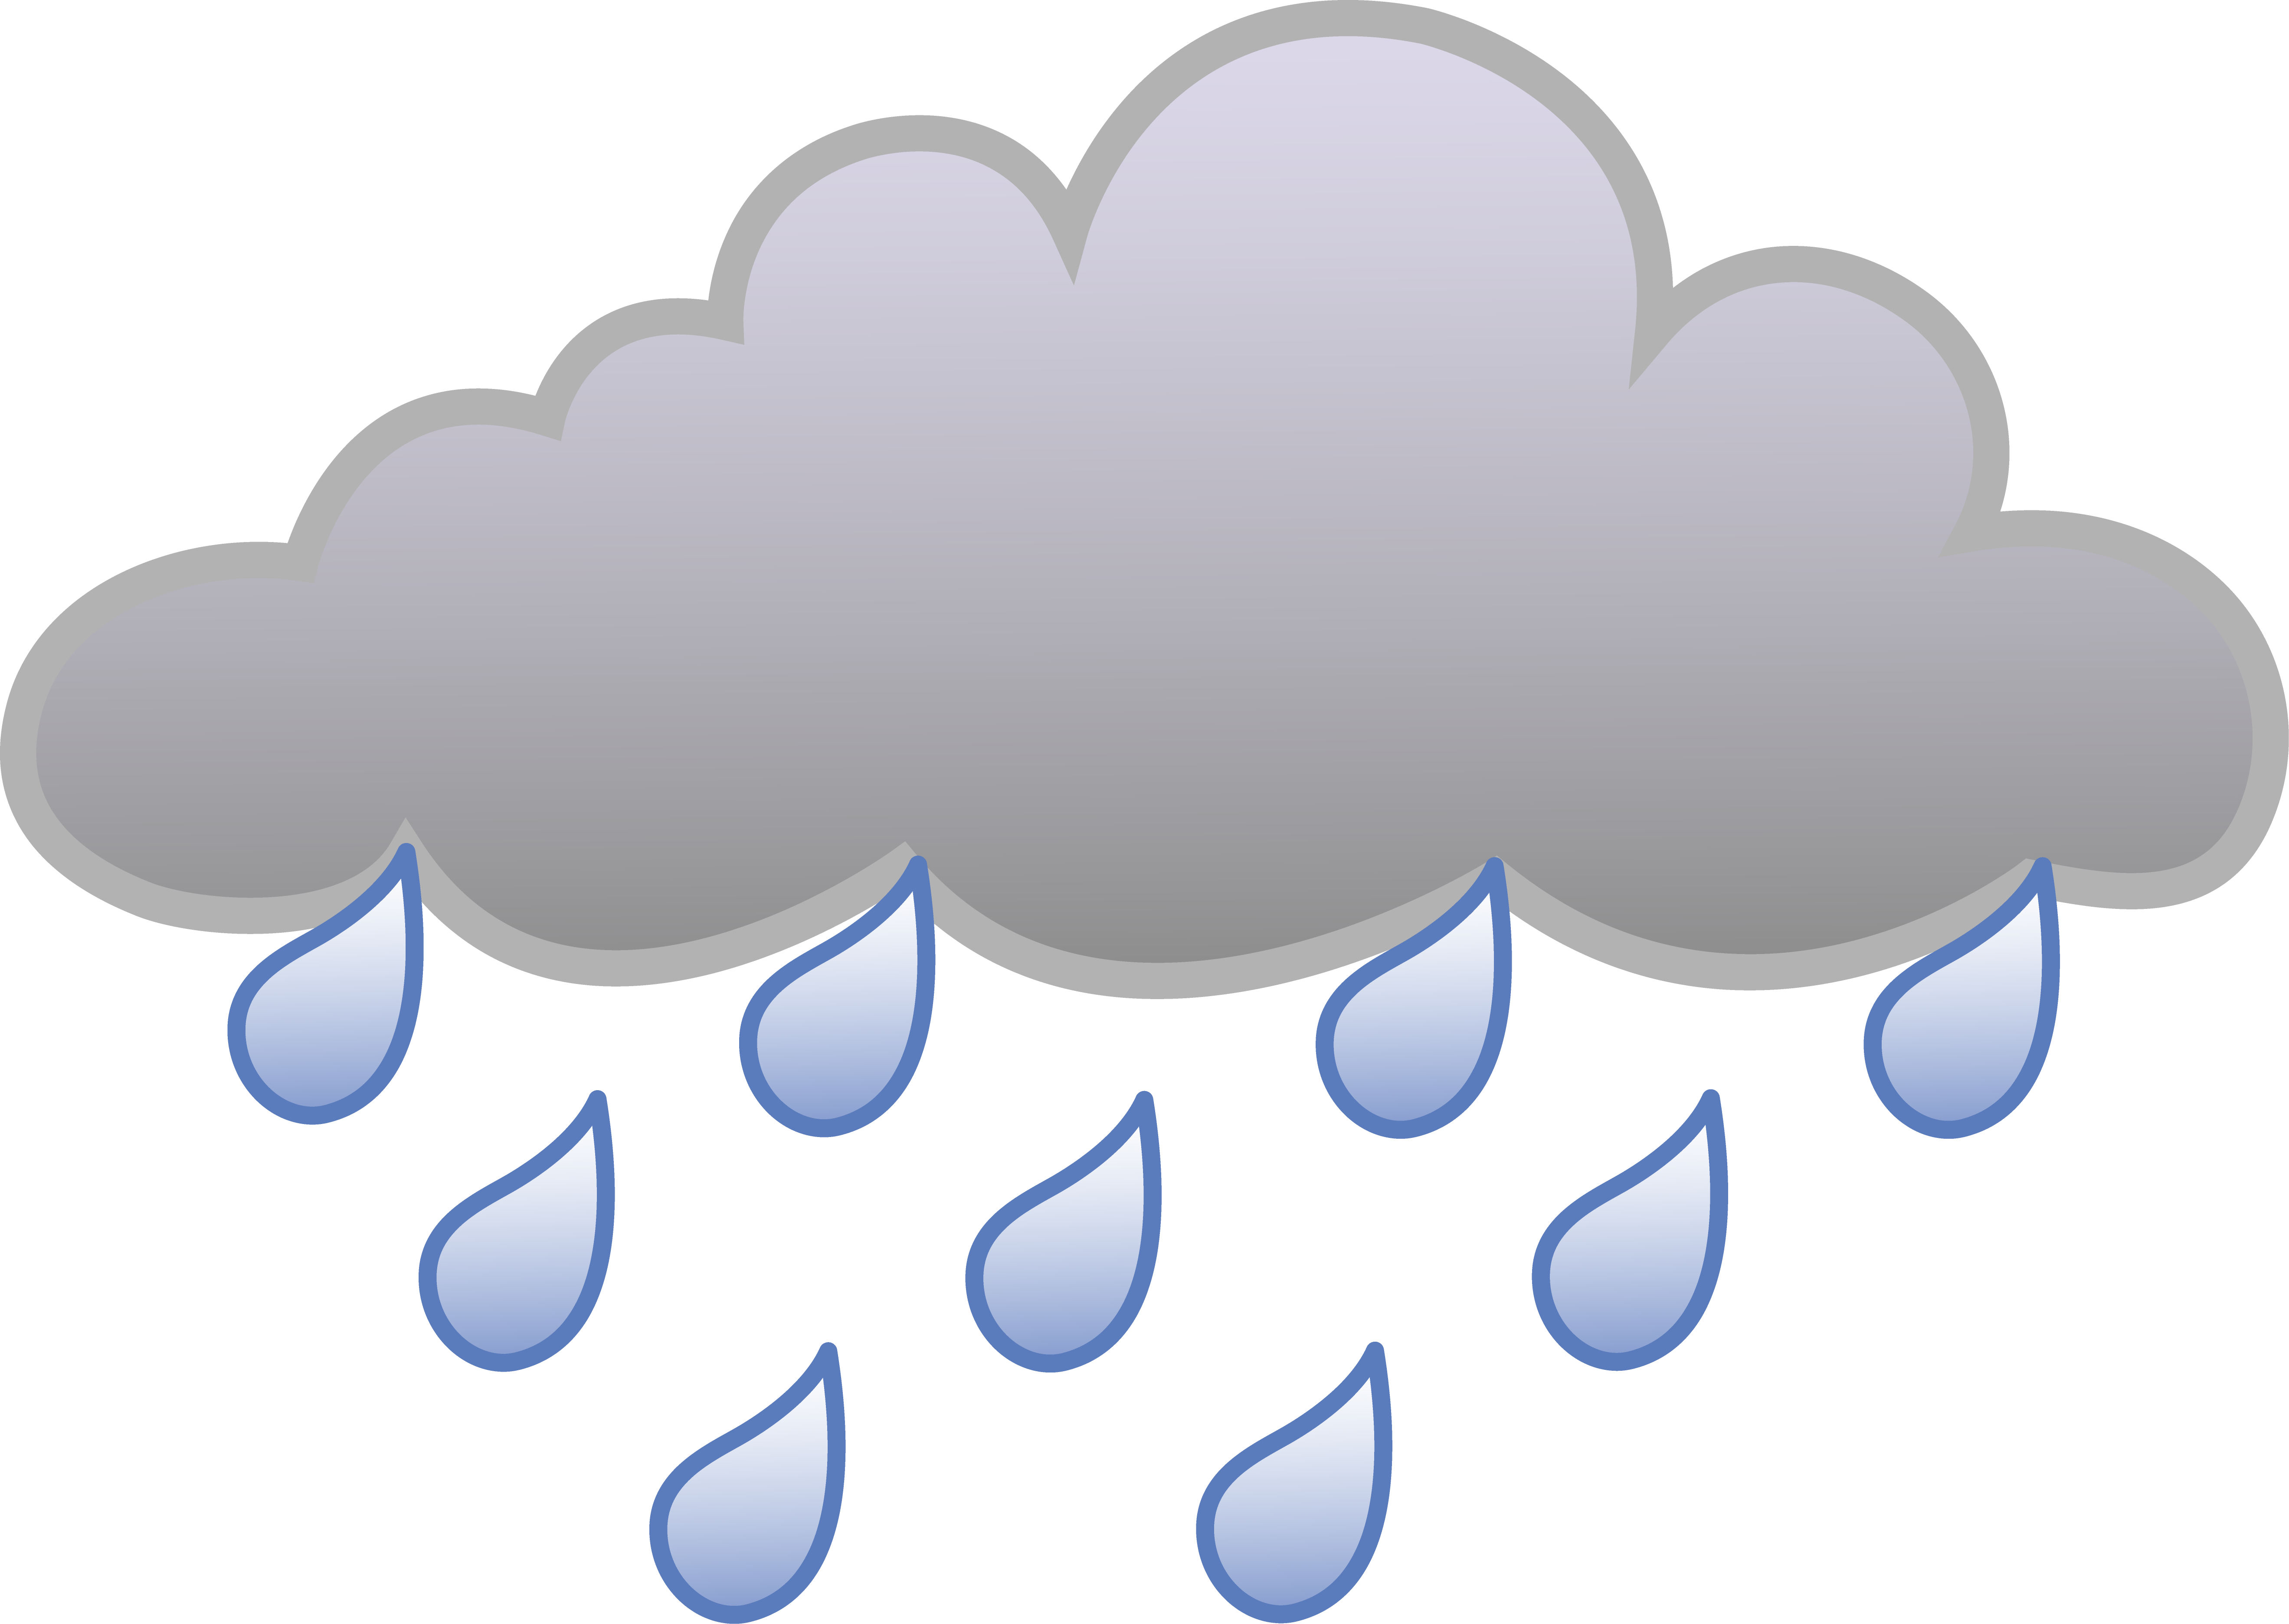 Wet clipart wet hair. Cloud chart kid clouds